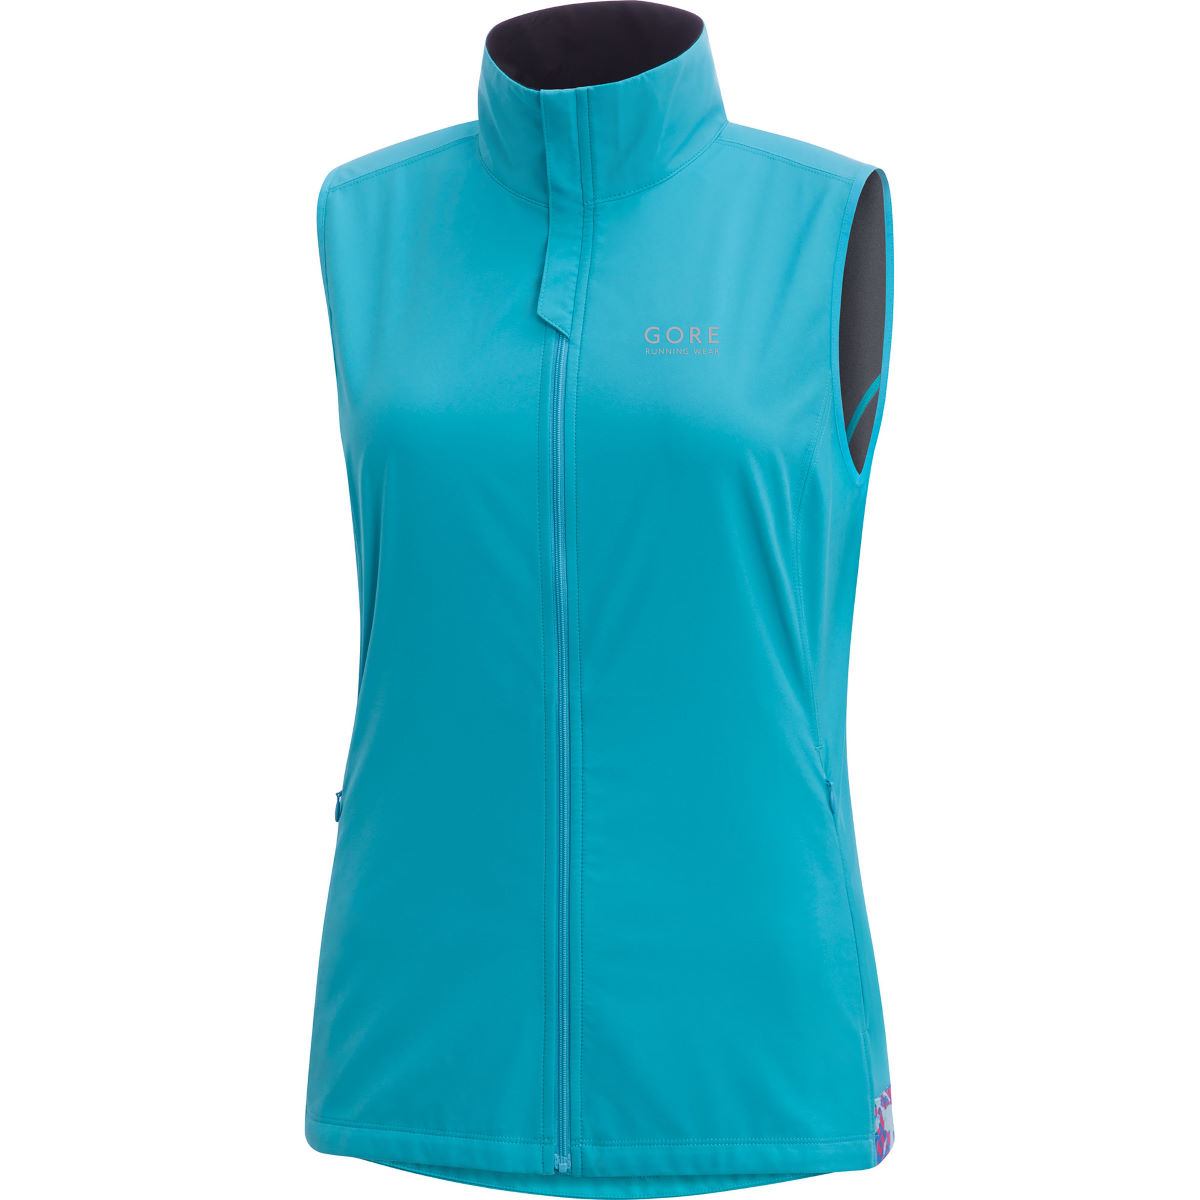 Chaleco Gore Running Wear Essential Lady GWS para mujer (PV17) - Chalecos...